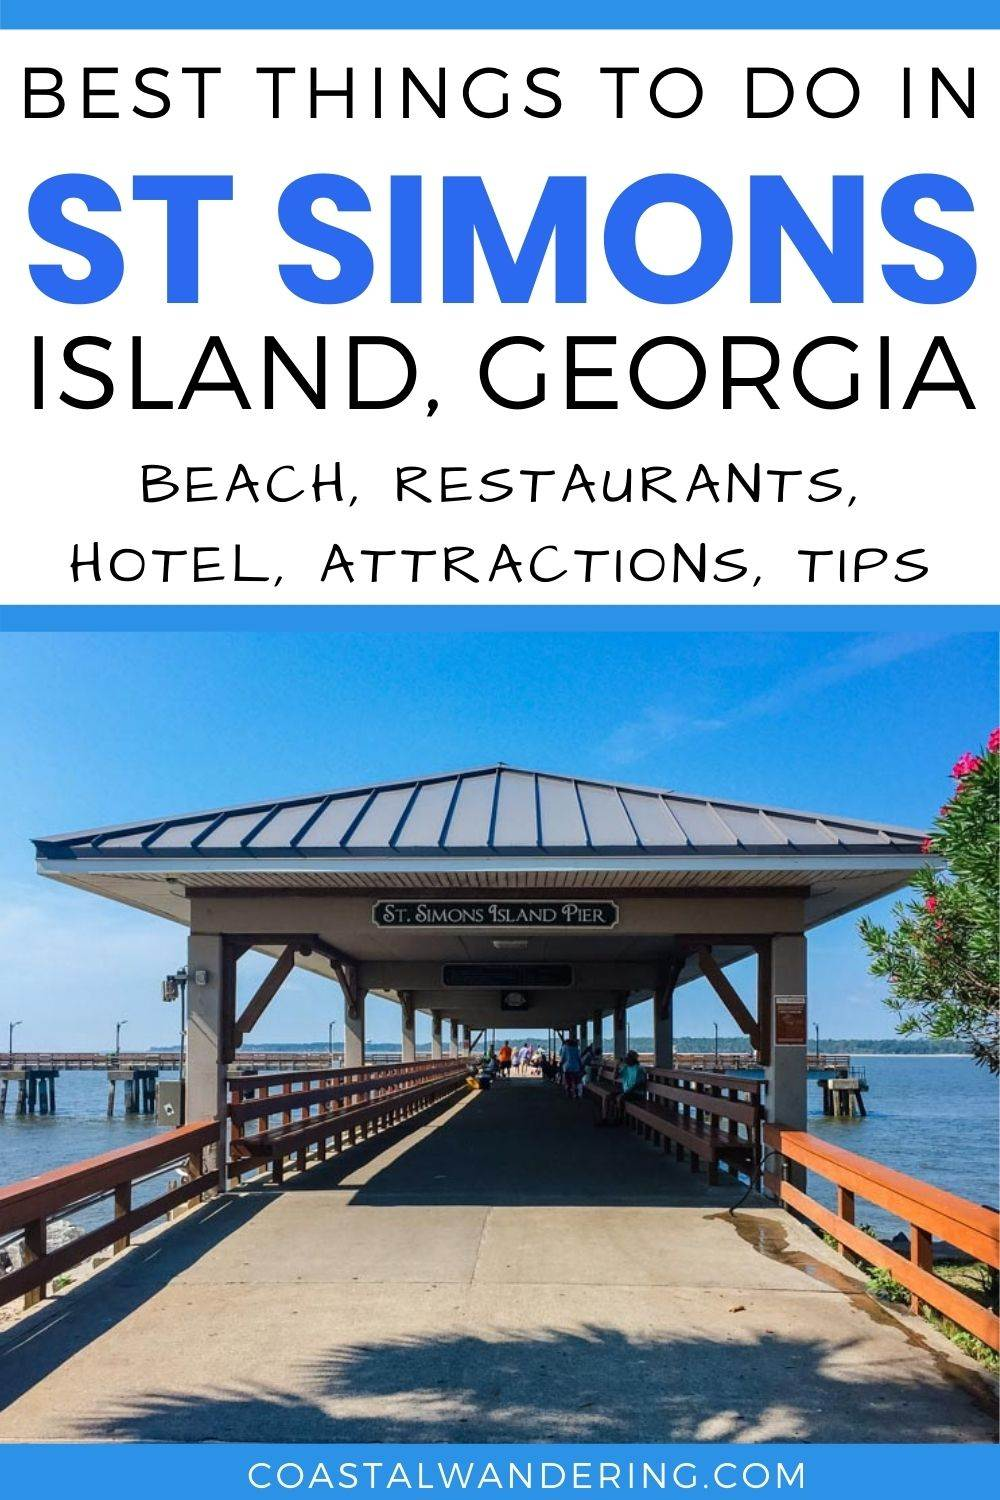 The Best Things to Do In St Simons Island In 2021